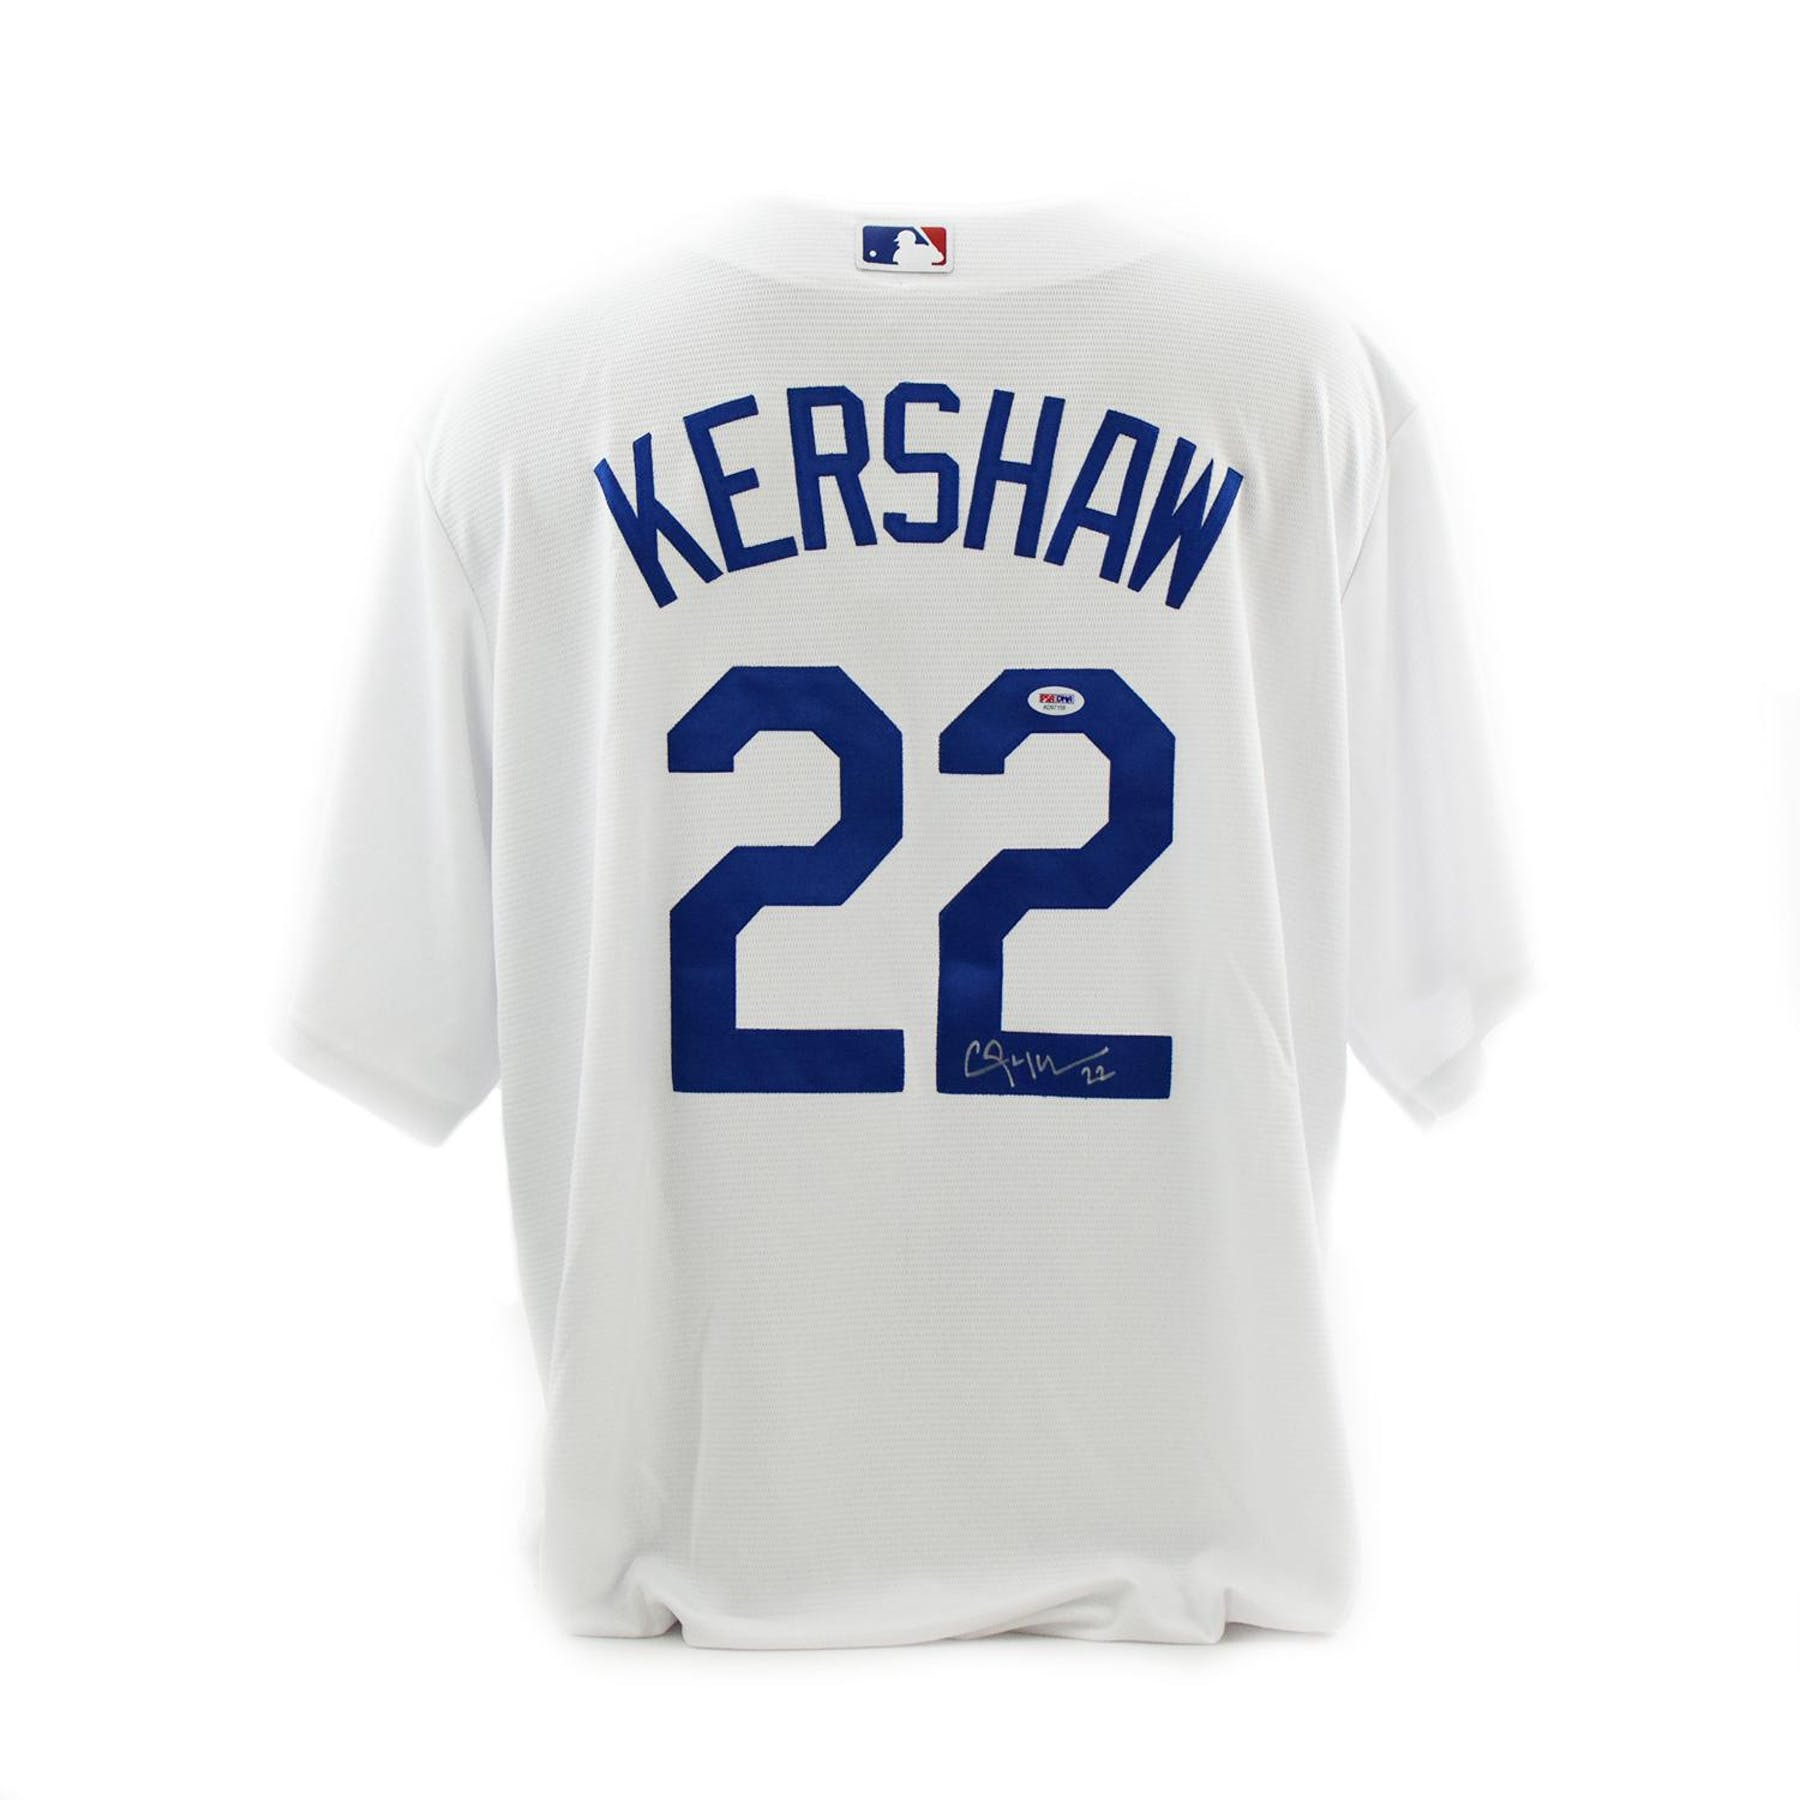 quality design f712b a451c Clayton Kershaw Autographed Los Angeles Dodgers Majestic Baseball Jersey  (PSA/DNA)